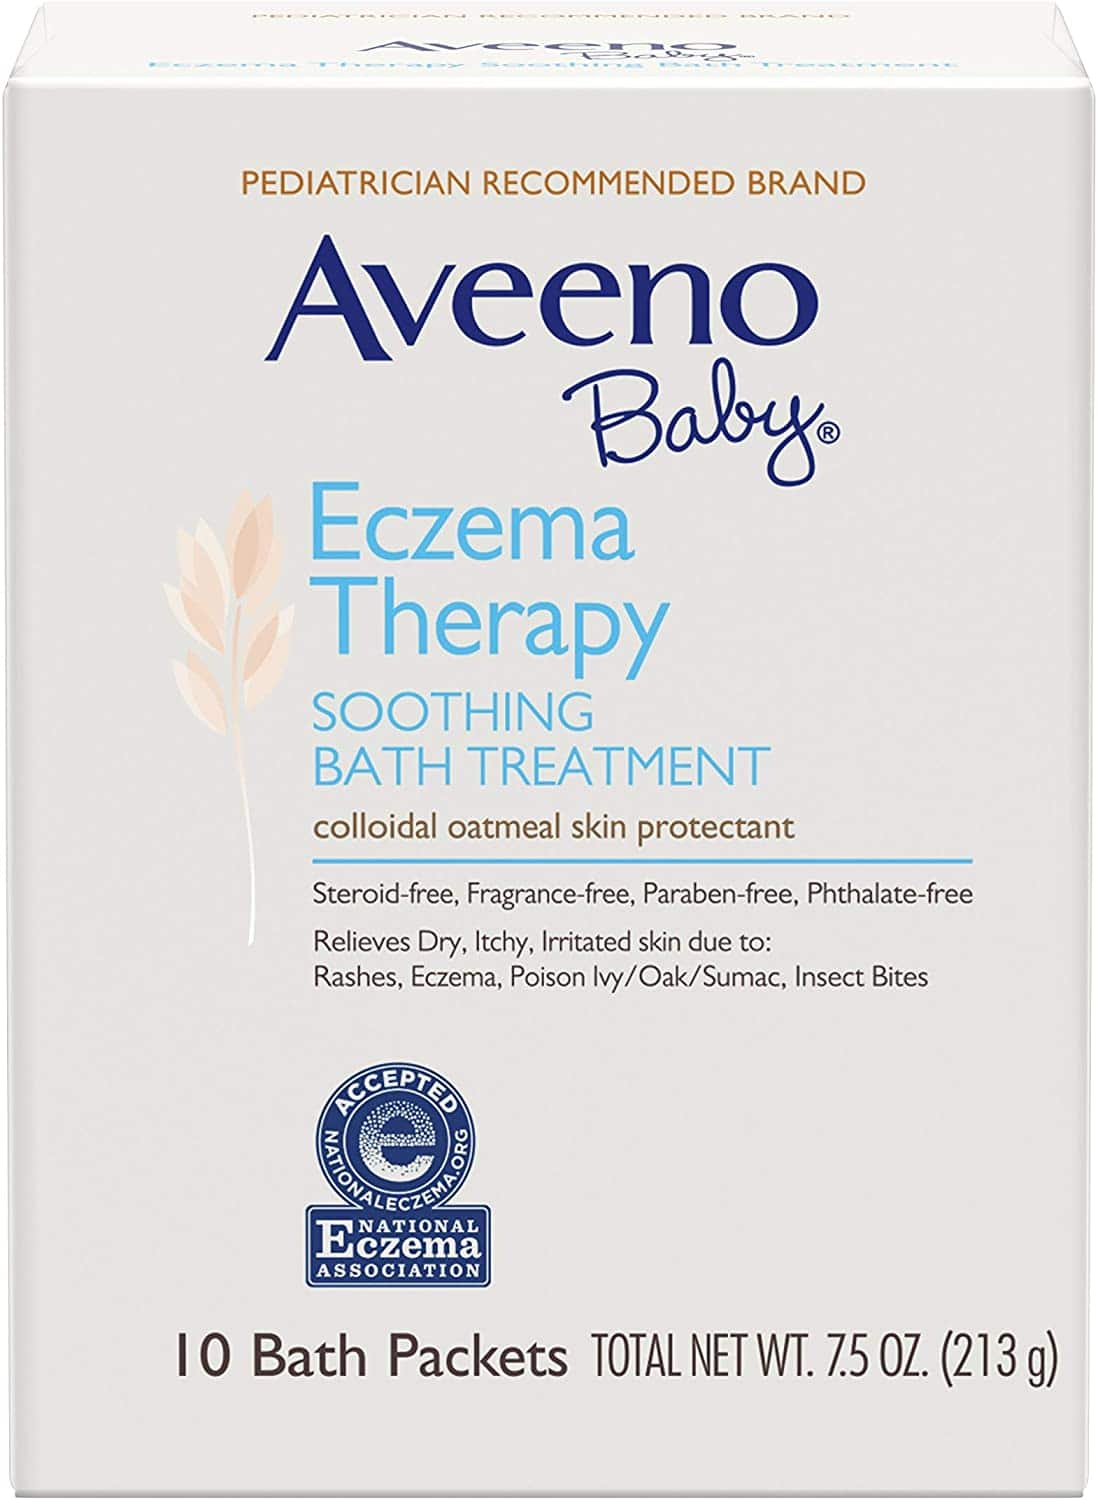 10-Ct Aveeno Baby Eczema Therapy Soothing Bath Treatment w/ Colloidal Oatmeal